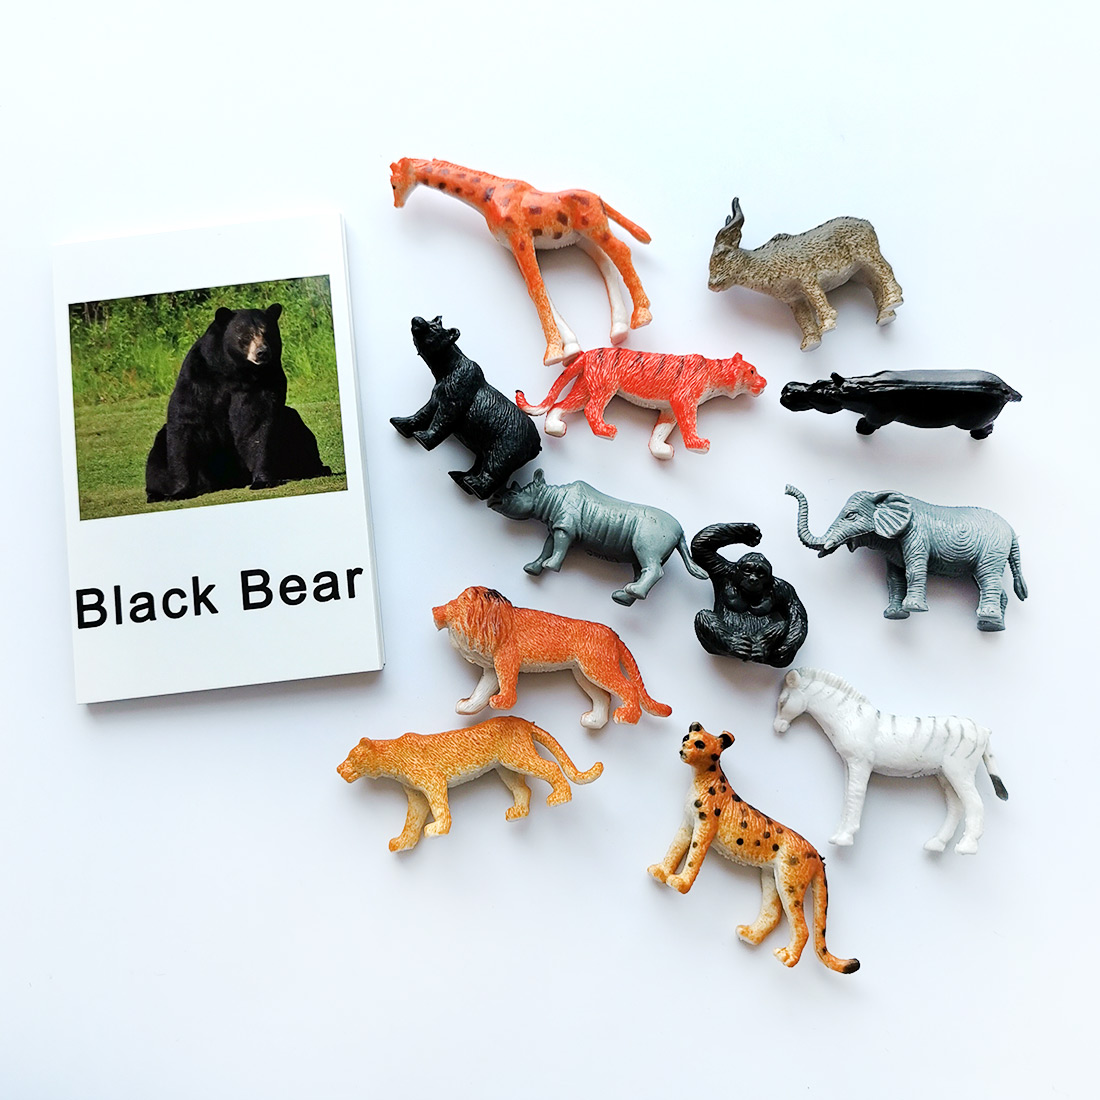 24Pcs/Set Montessori baby Learning English Animals Kids Card Early Educational practical life Toys For Children L2666F Learning & Education cb5feb1b7314637725a2e7: Animals Footprin1 Animals Footprin2 Animals Footprin3 dinosaur Farm Forest Animal 1 Forest Animal 2 Forest Animal 3 Insect Marine Poultry Animals Zodiac